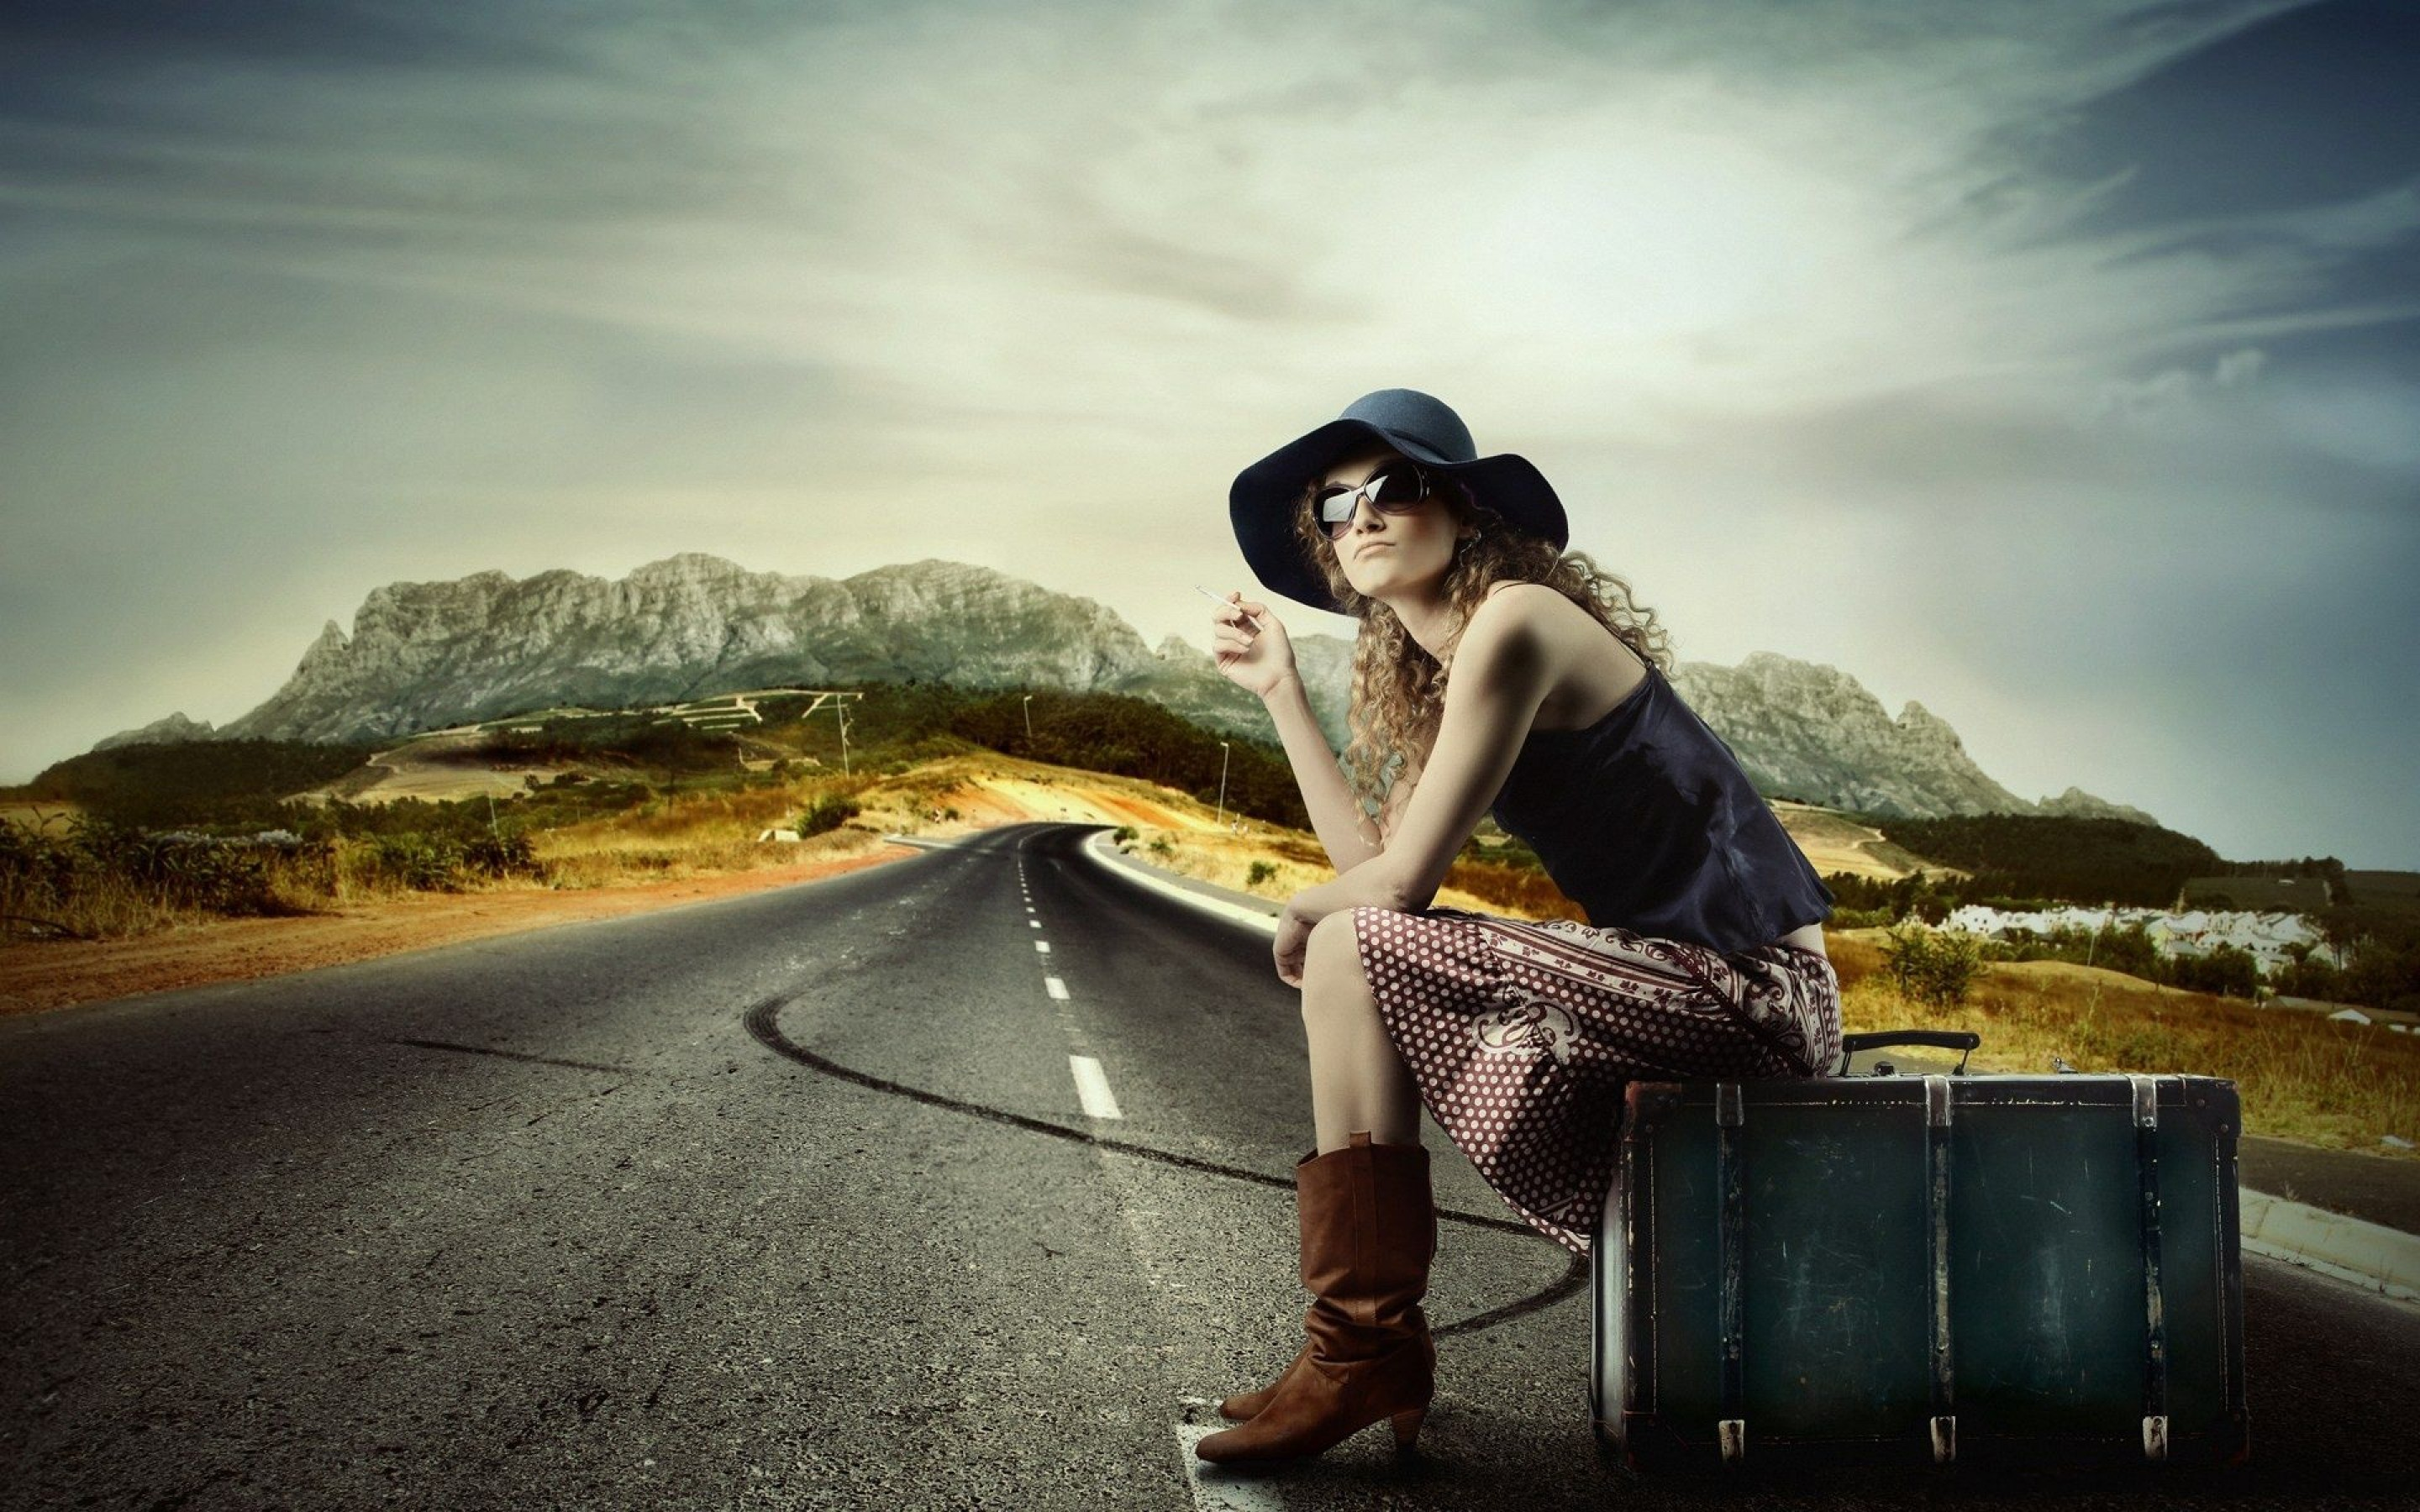 Girl on the road hitchhiking